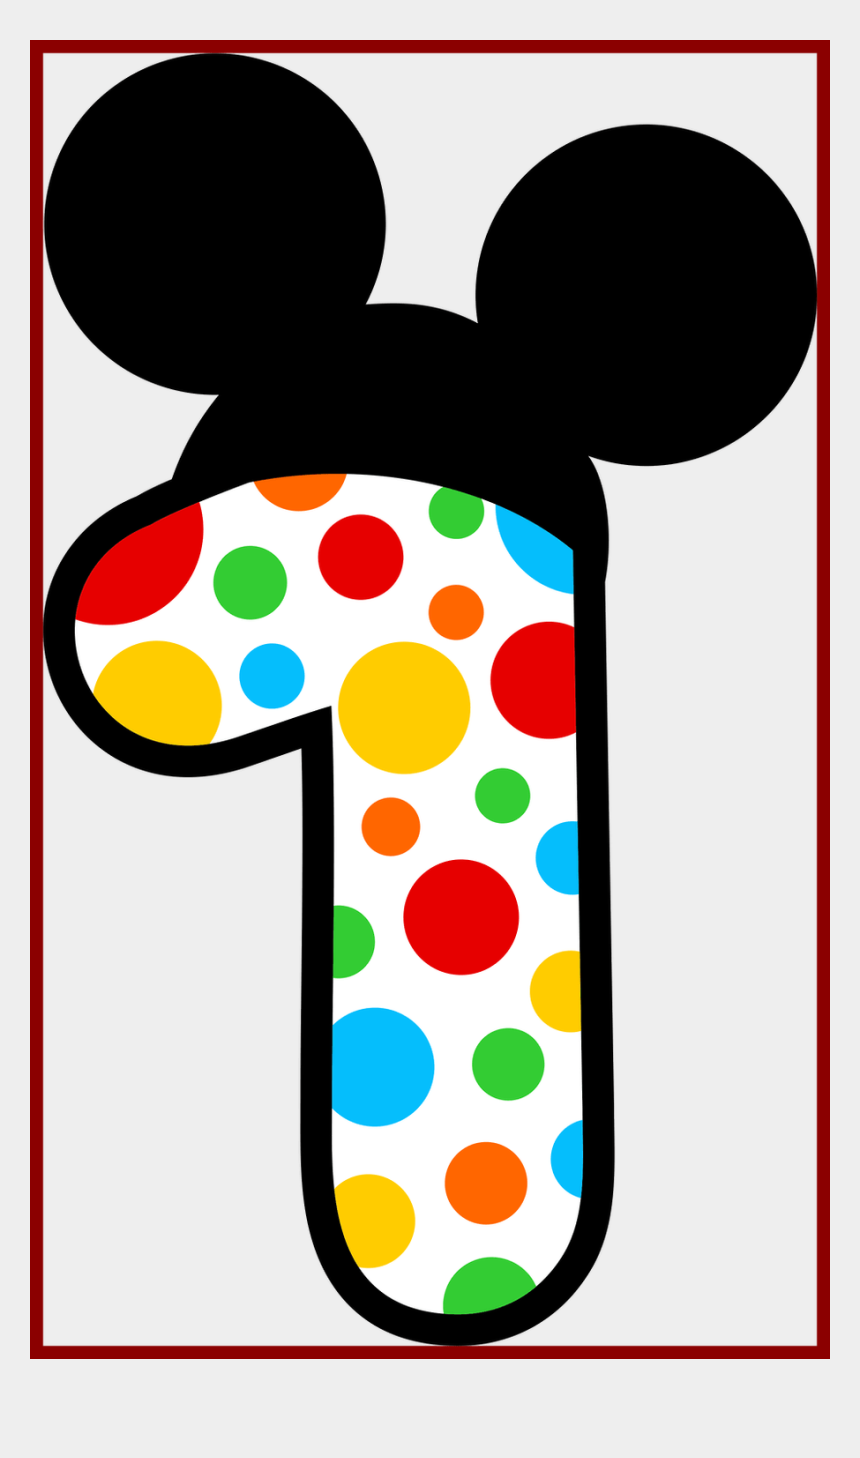 dress up clipart, Cartoons - Incredible Mickey Minnie Minus Clipart Mouse Dressup - Mickey Mouse Clubhouse Number 1